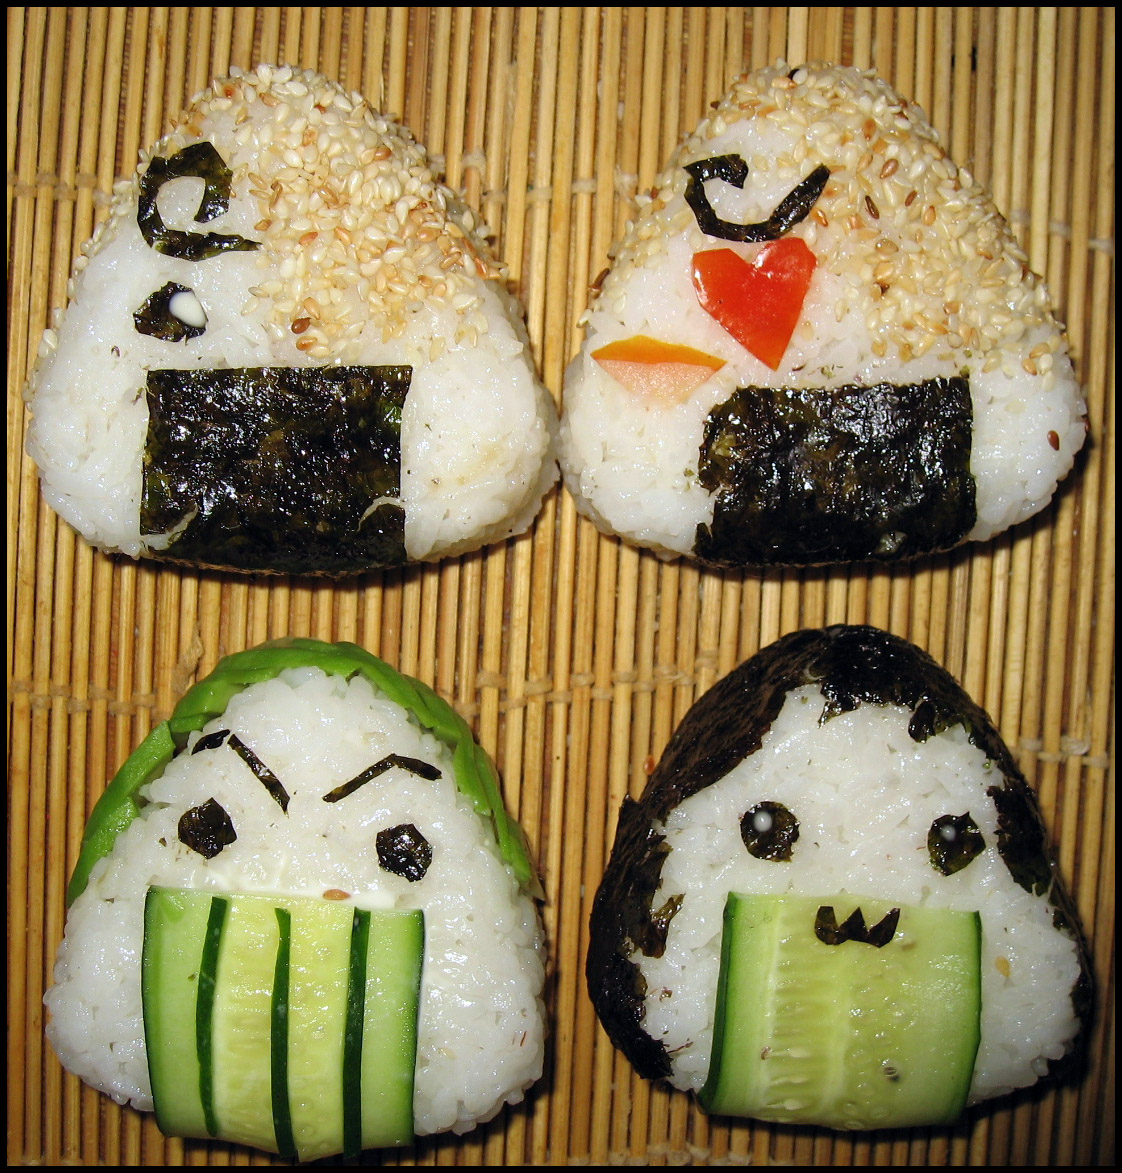 -http://fc02.deviantart.net/fs43/f/2009/118/f/b/Cooking_is_so_fun_XD_Onigiri_by_Rens_twin.jpg